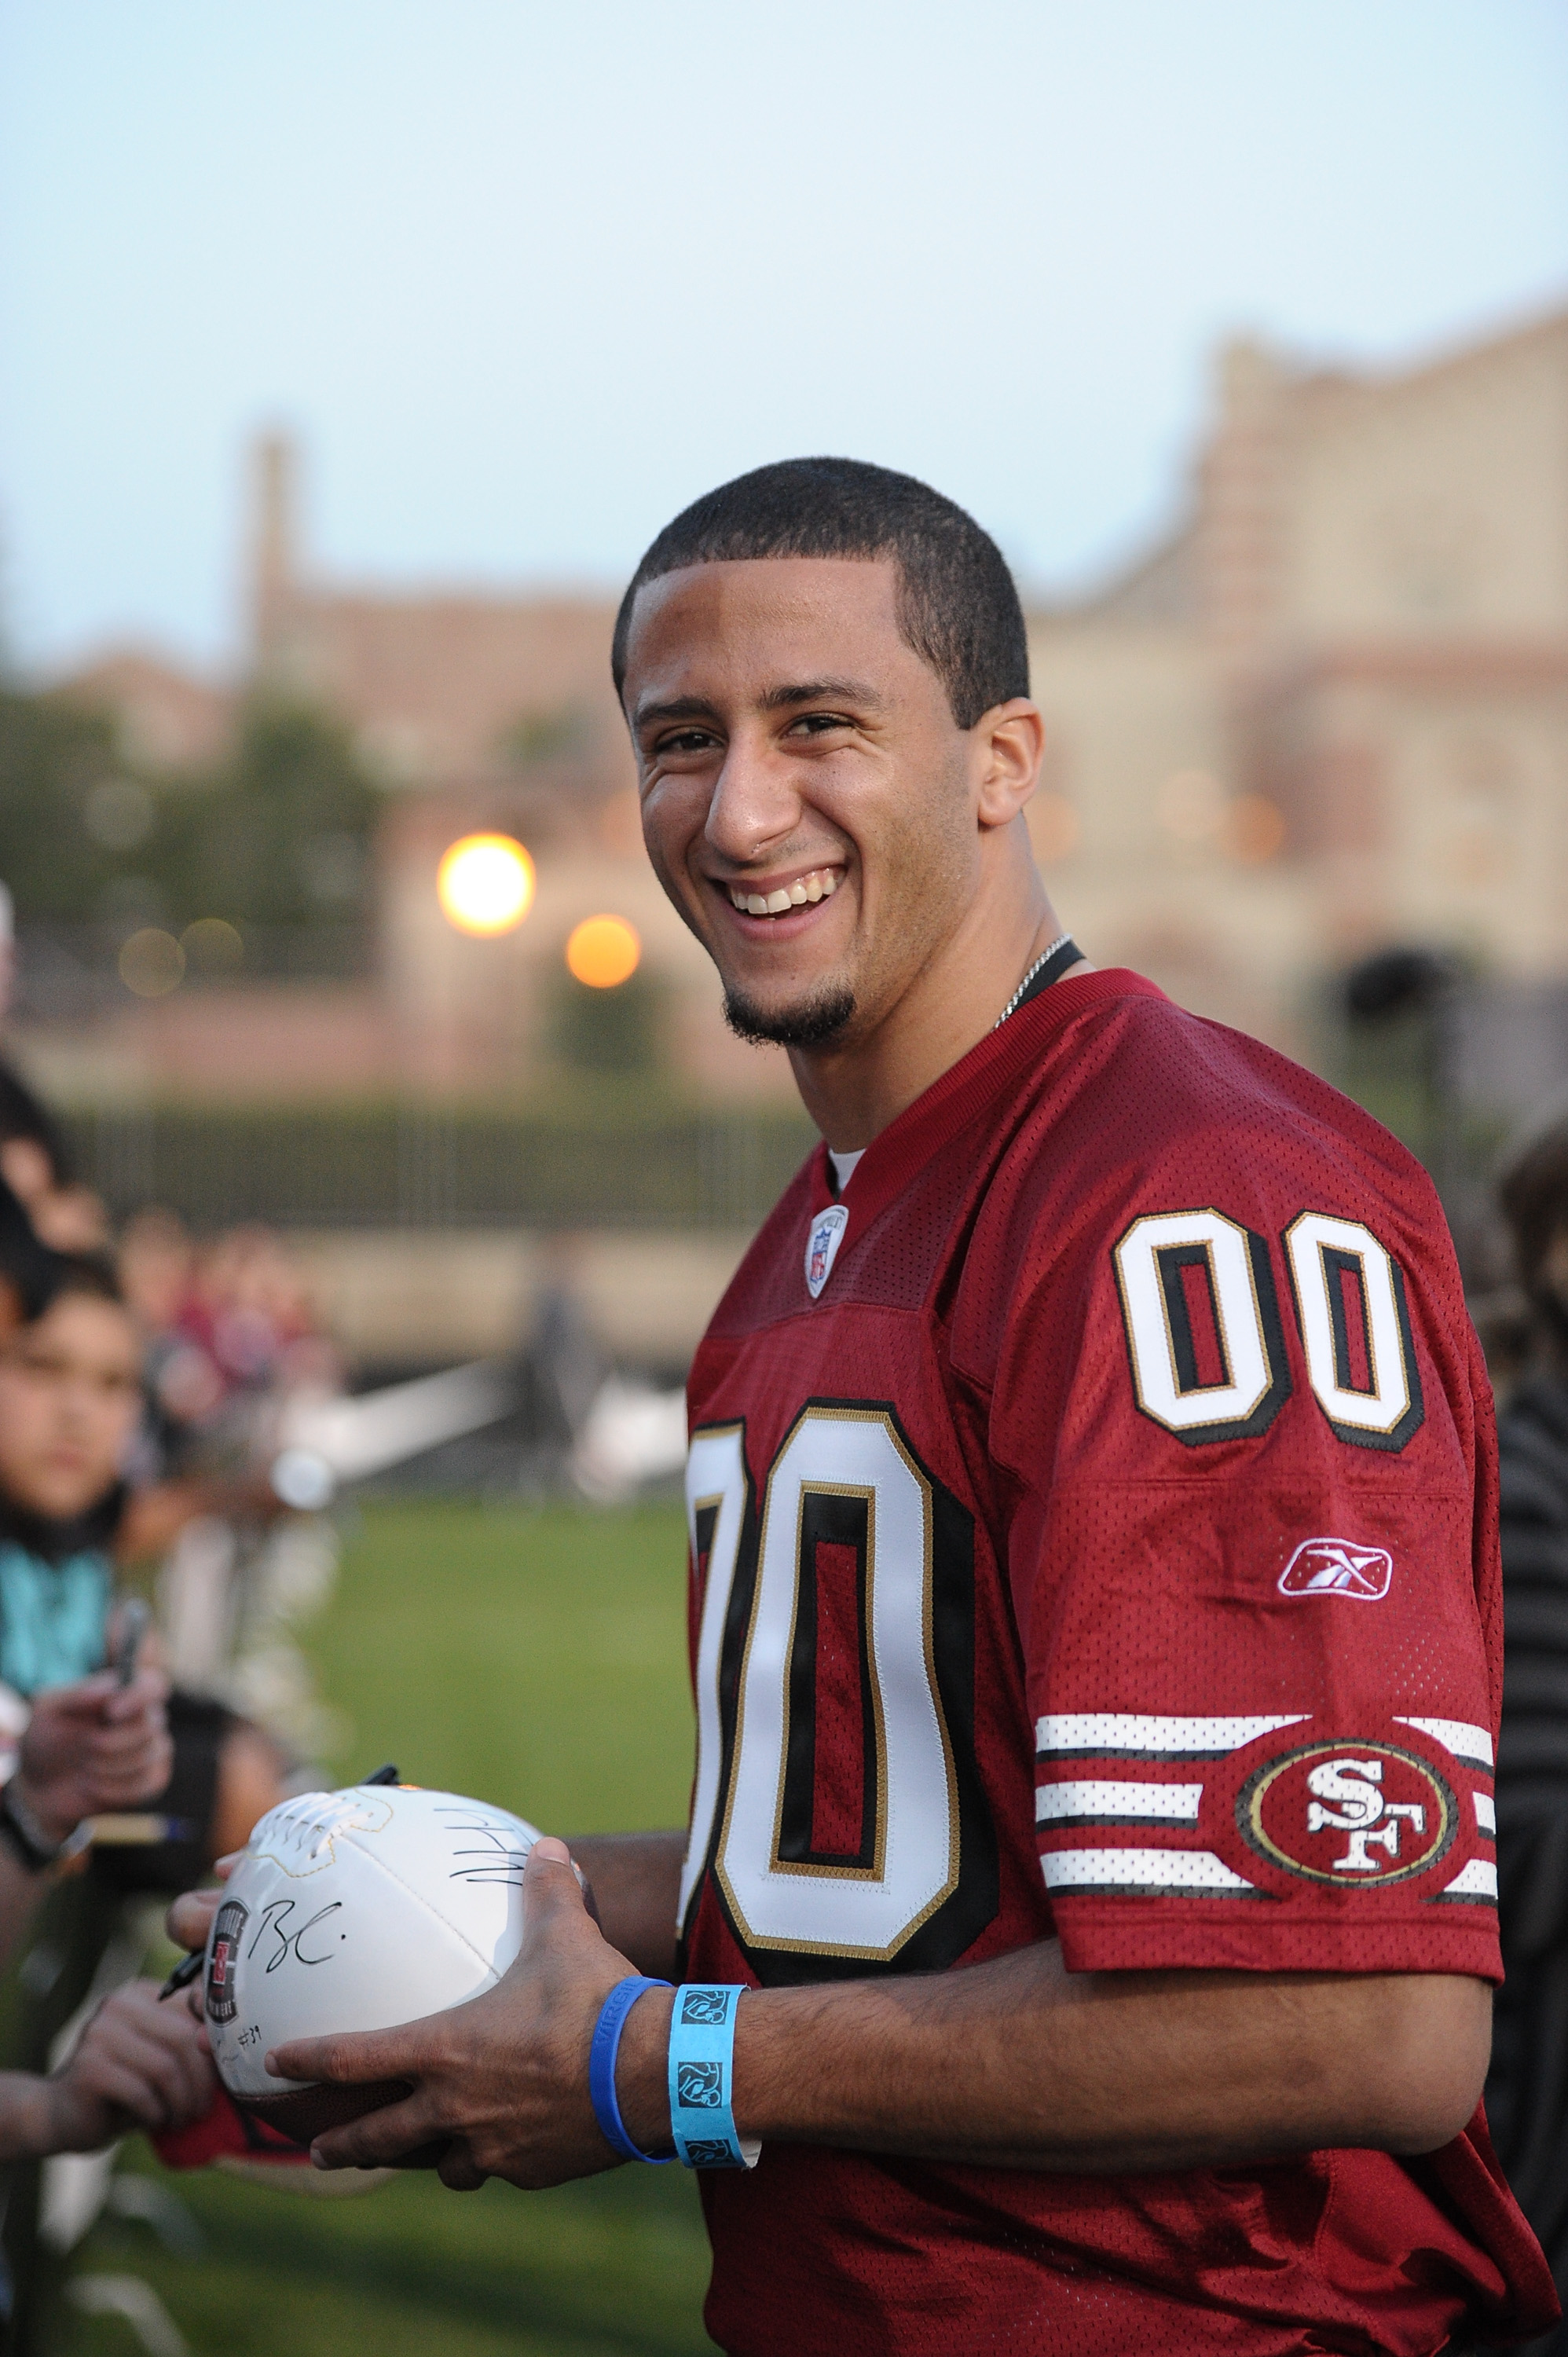 LOS ANGELES, CA - MAY 20:  Colin Kaepernick attends the NFL PLAYERS Premiere League Flag Football Game at UCLA on May 20, 2011 in Los Angeles, California.  (Photo by Noel Vasquez/Getty Images)